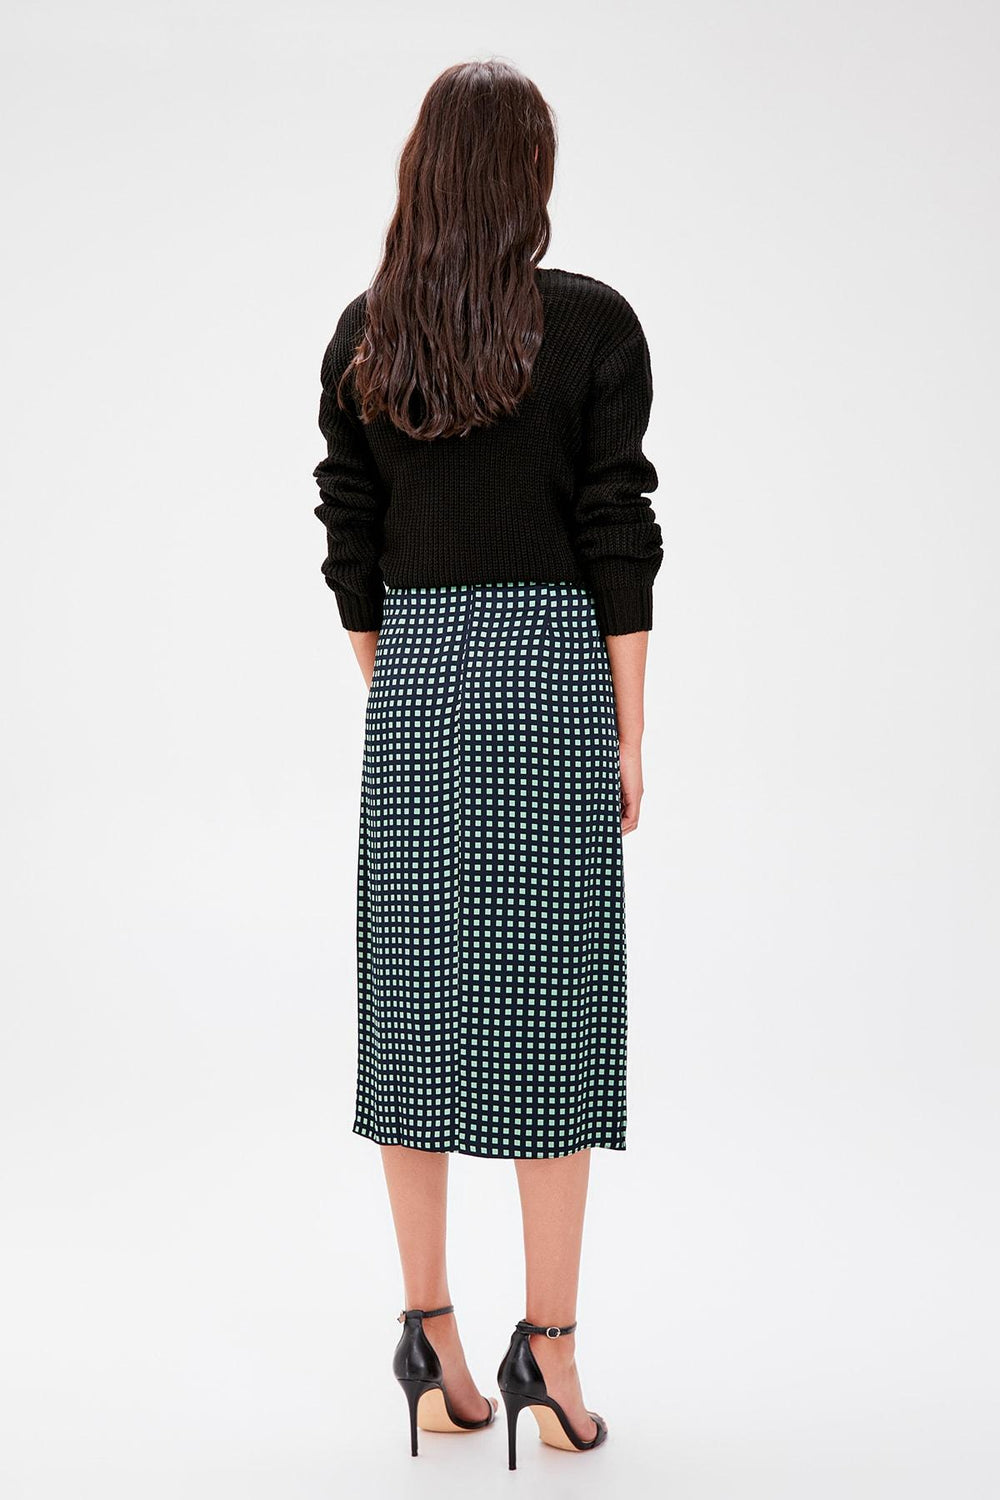 Black Plaid Skirt - Top Maxy